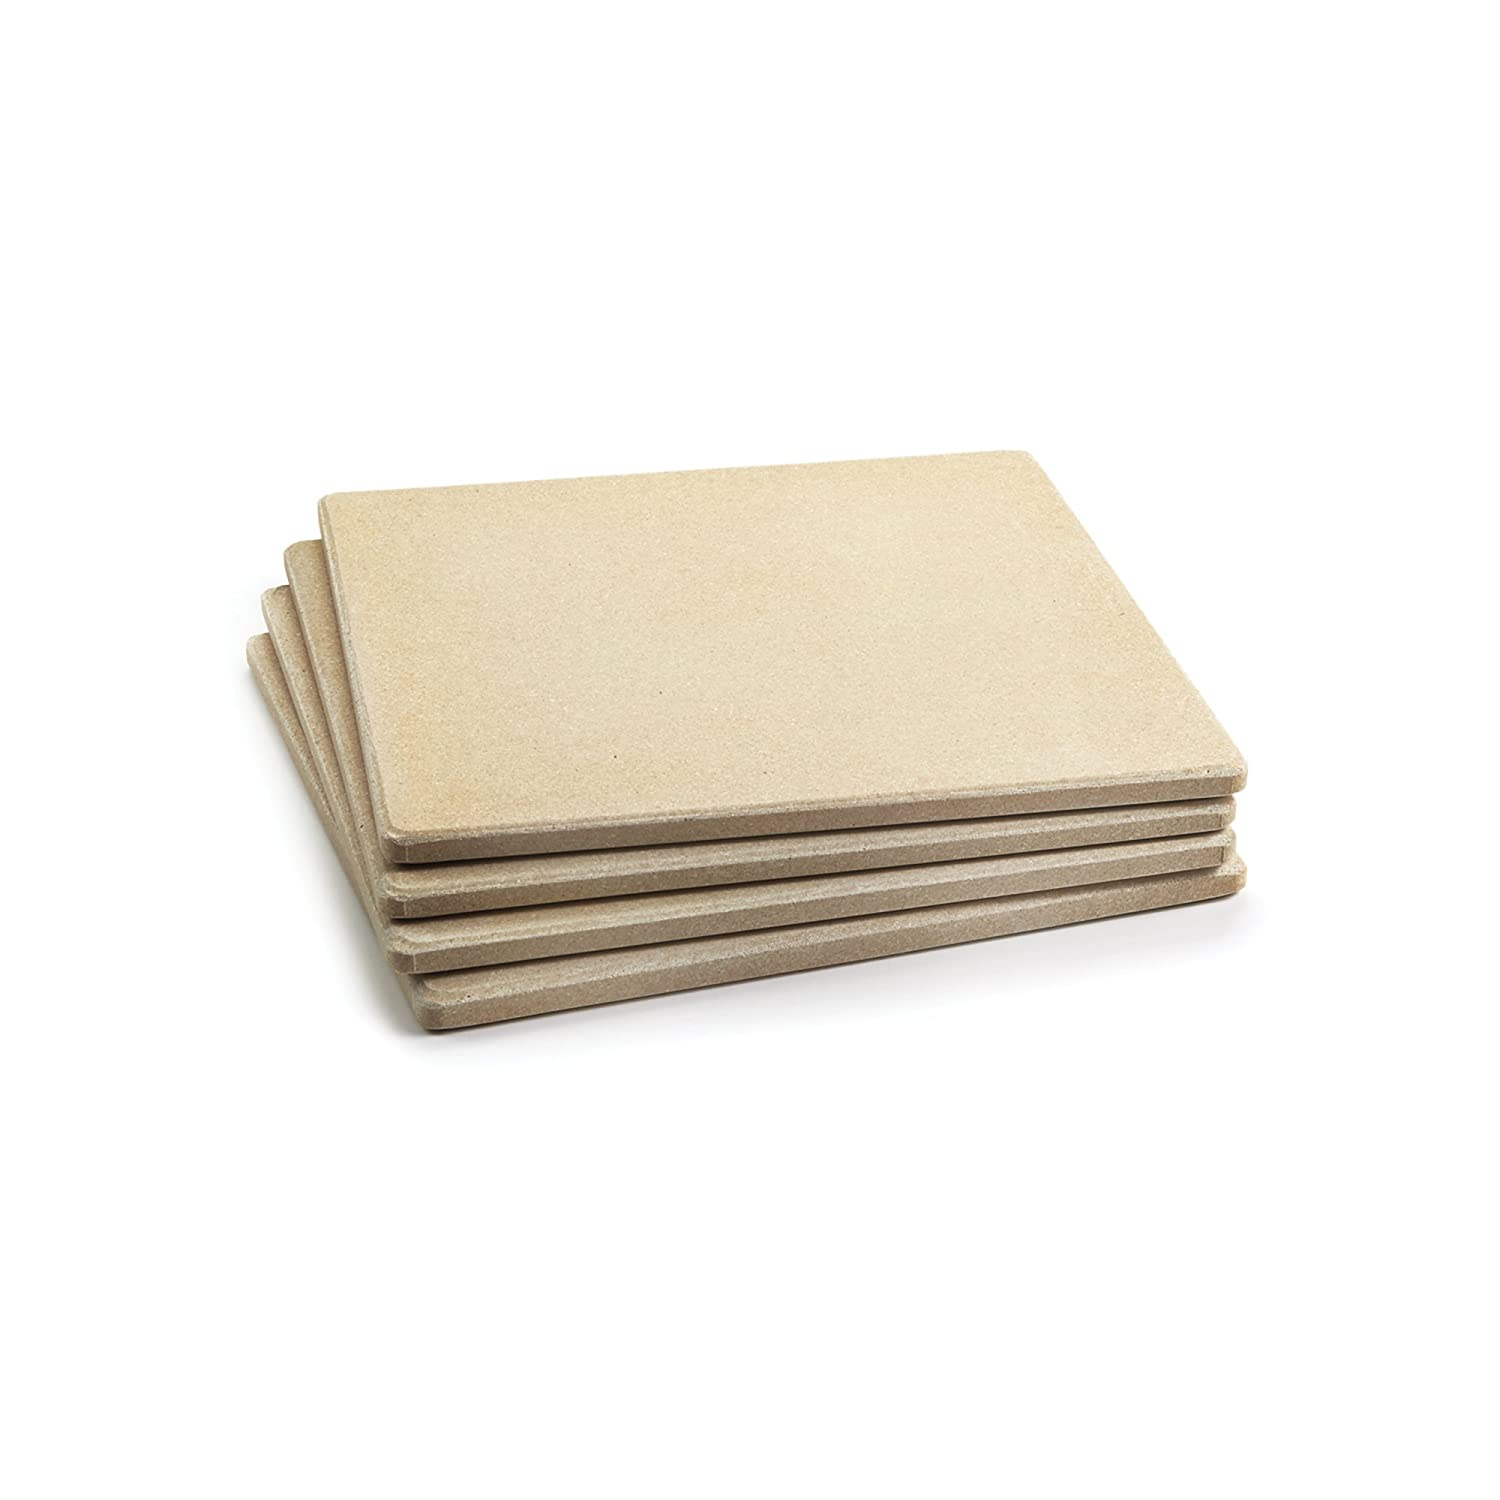 Outset 76176 Pizza Grill Stone Tiles, Set of 4